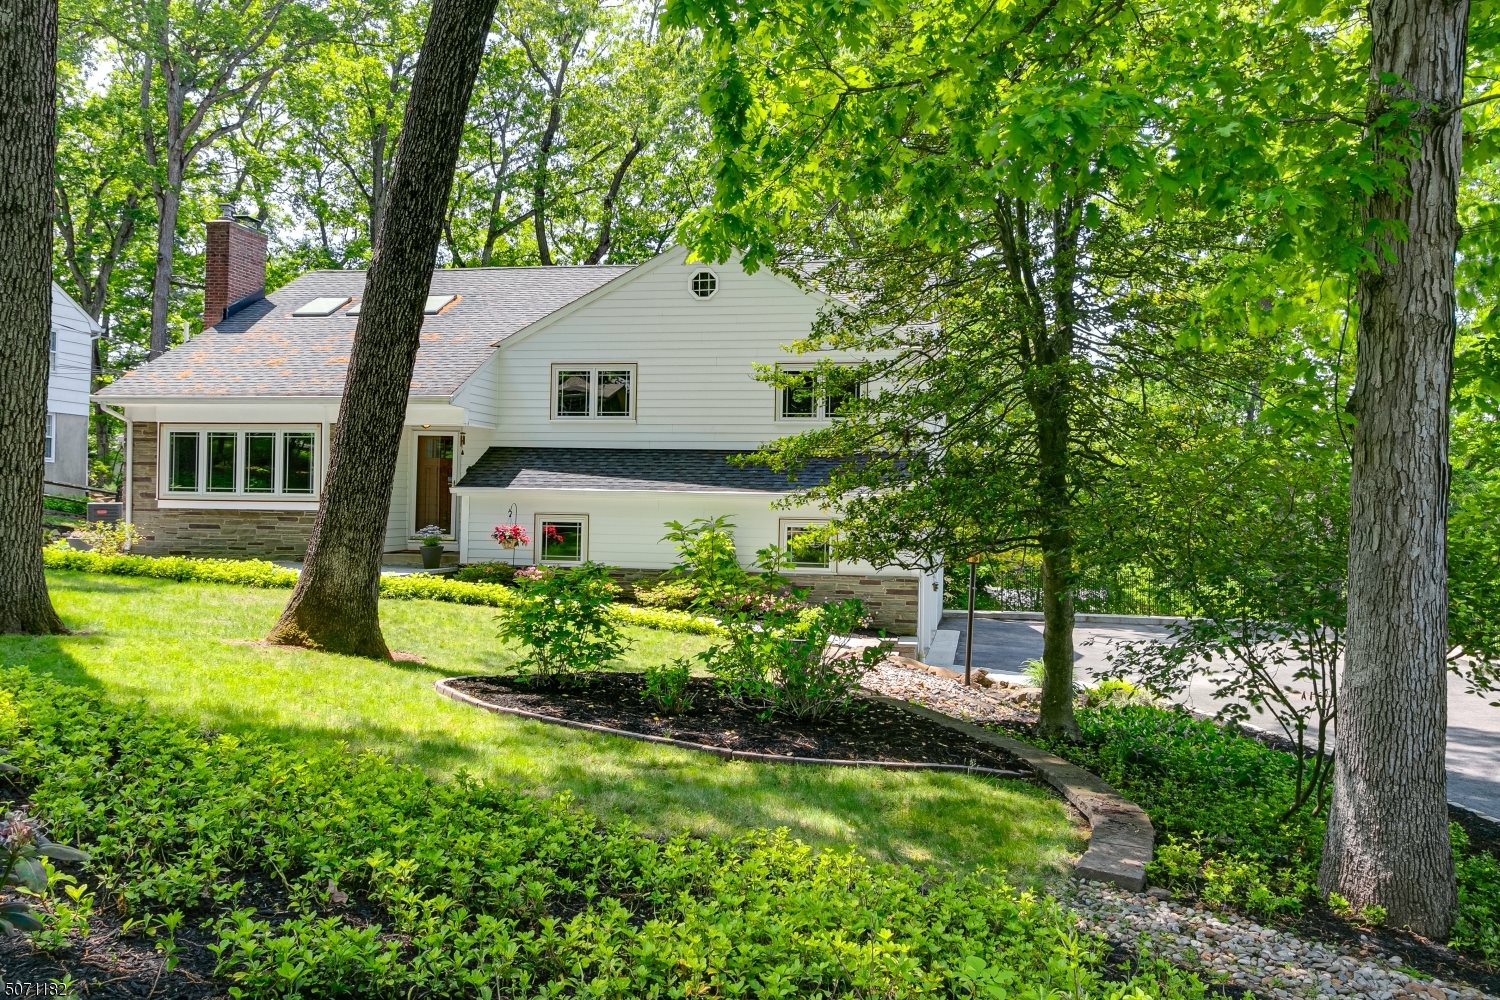 129 Countryside Dr, Berkeley Heights Township, NJ 07901